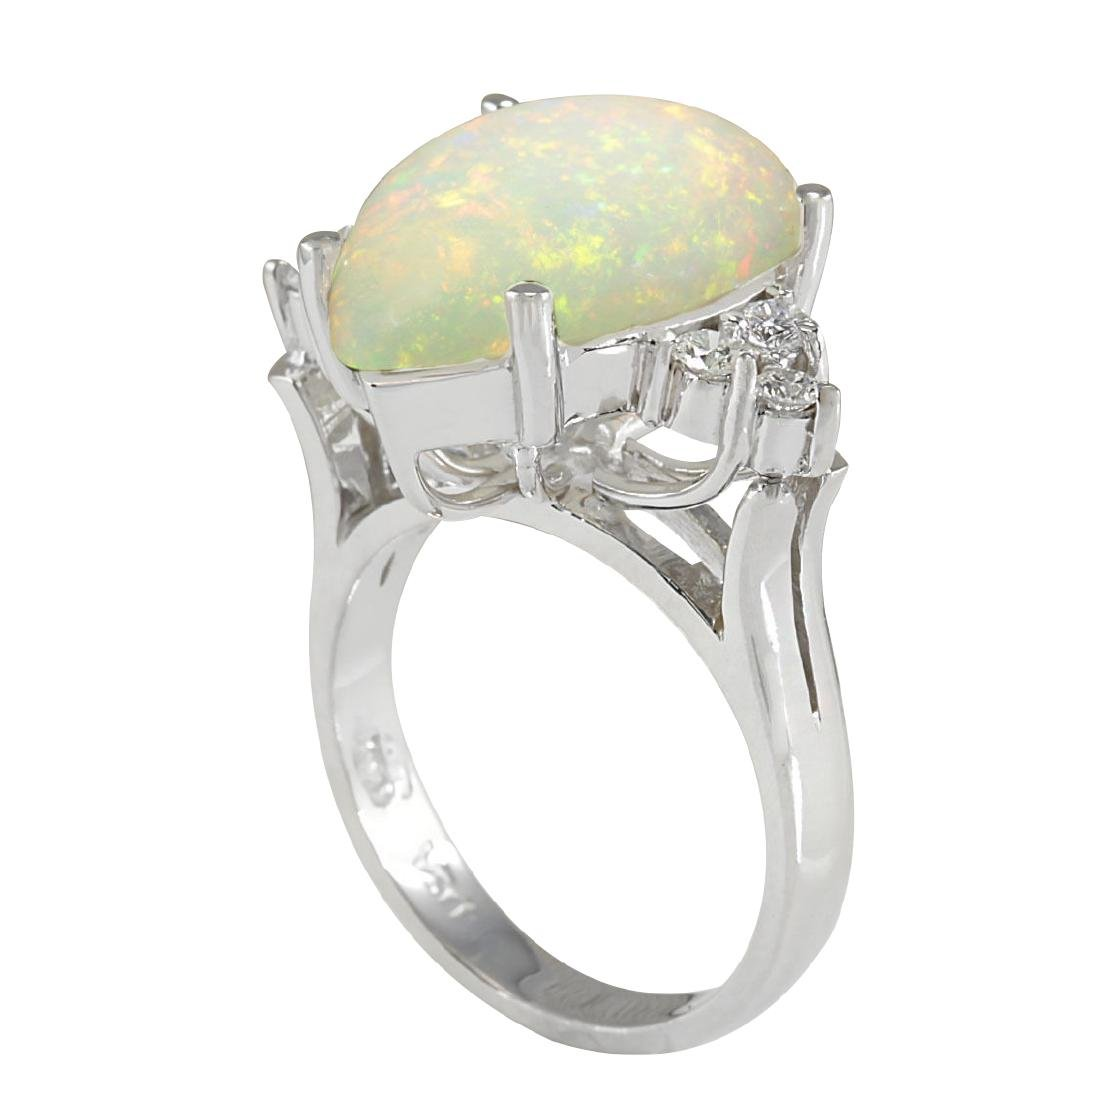 4.61CTW Natural Opal And Diamond Ring In 18K White Gold - 3